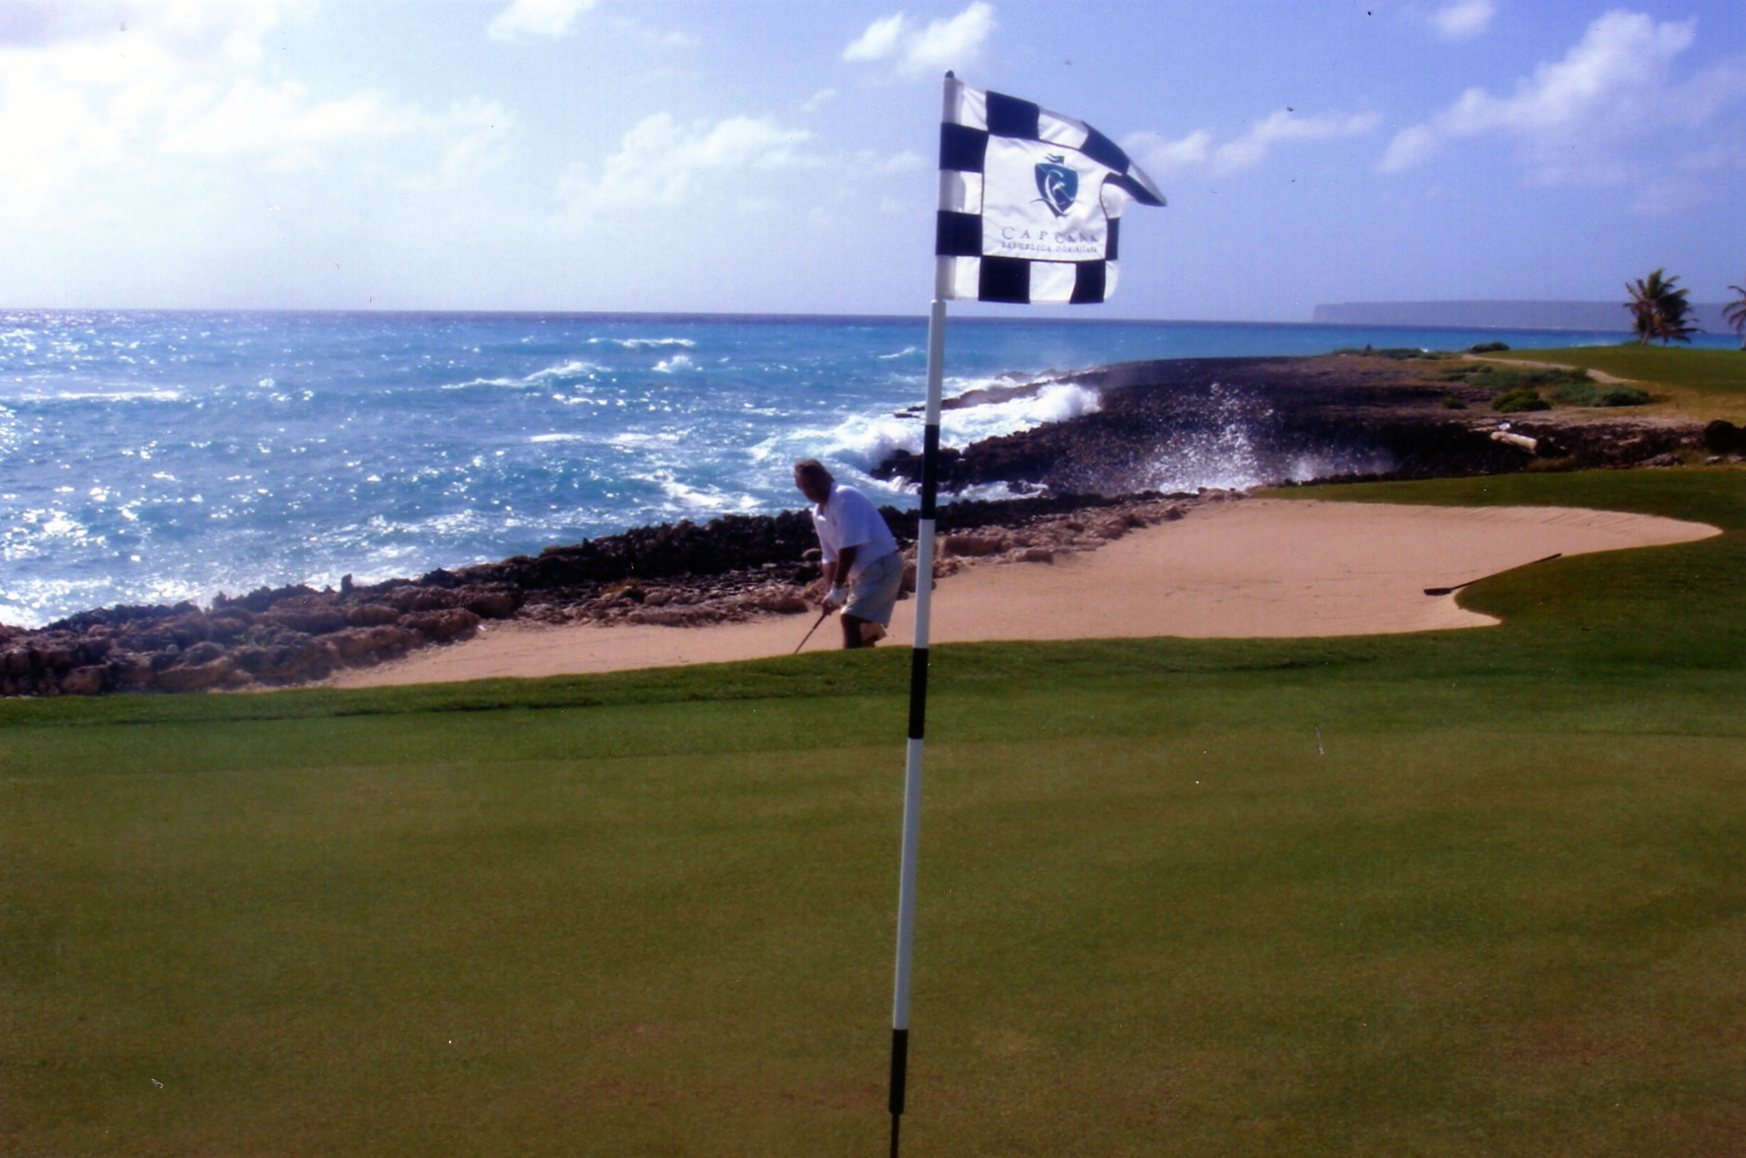 Dominican Republic Golf Hole in One Kevin Kolenda Images